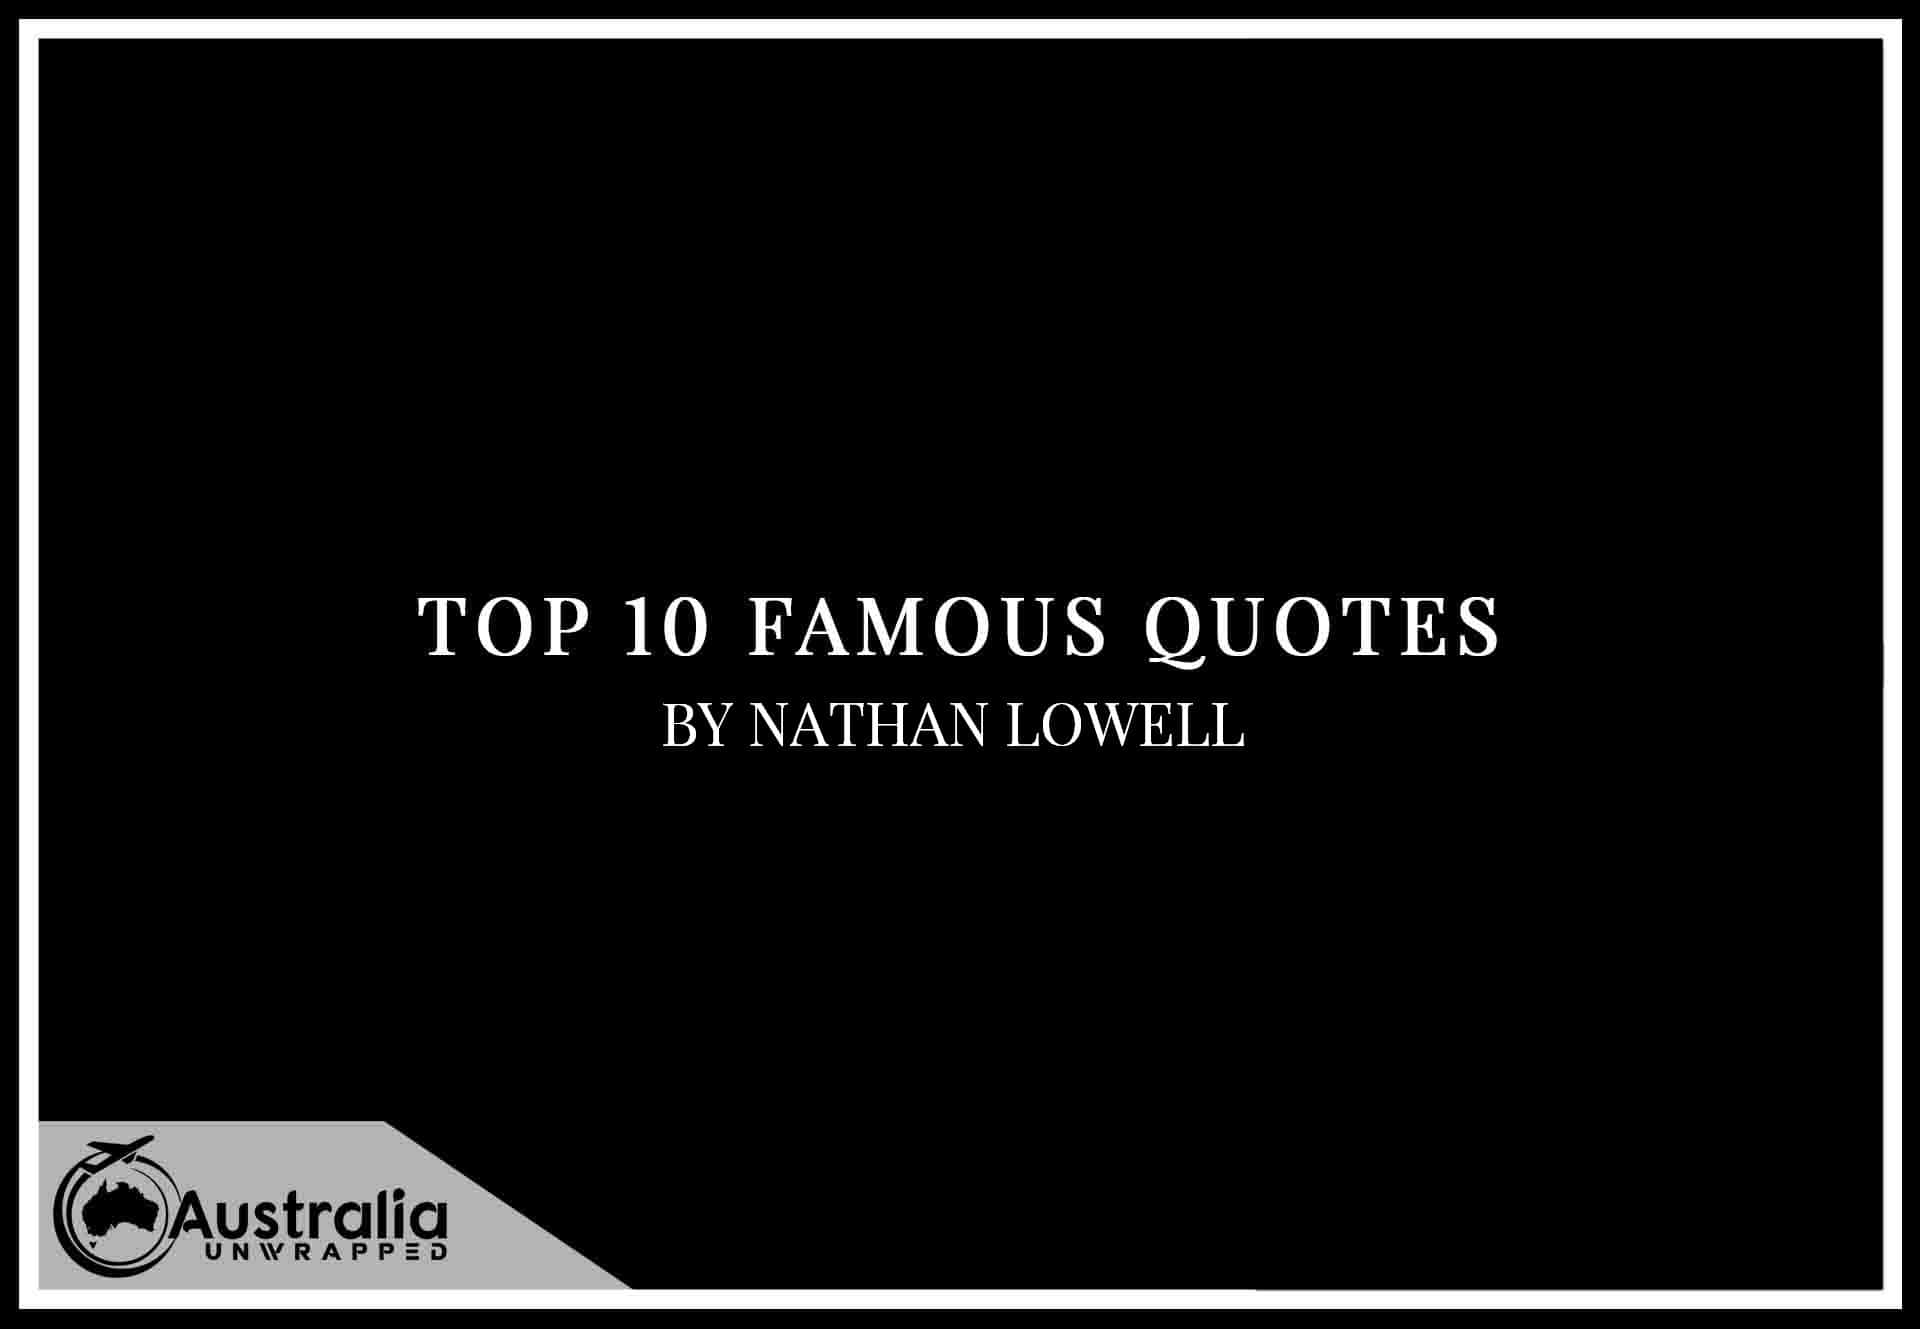 Top 10 Famous Quotes by Author Nathan Lowell